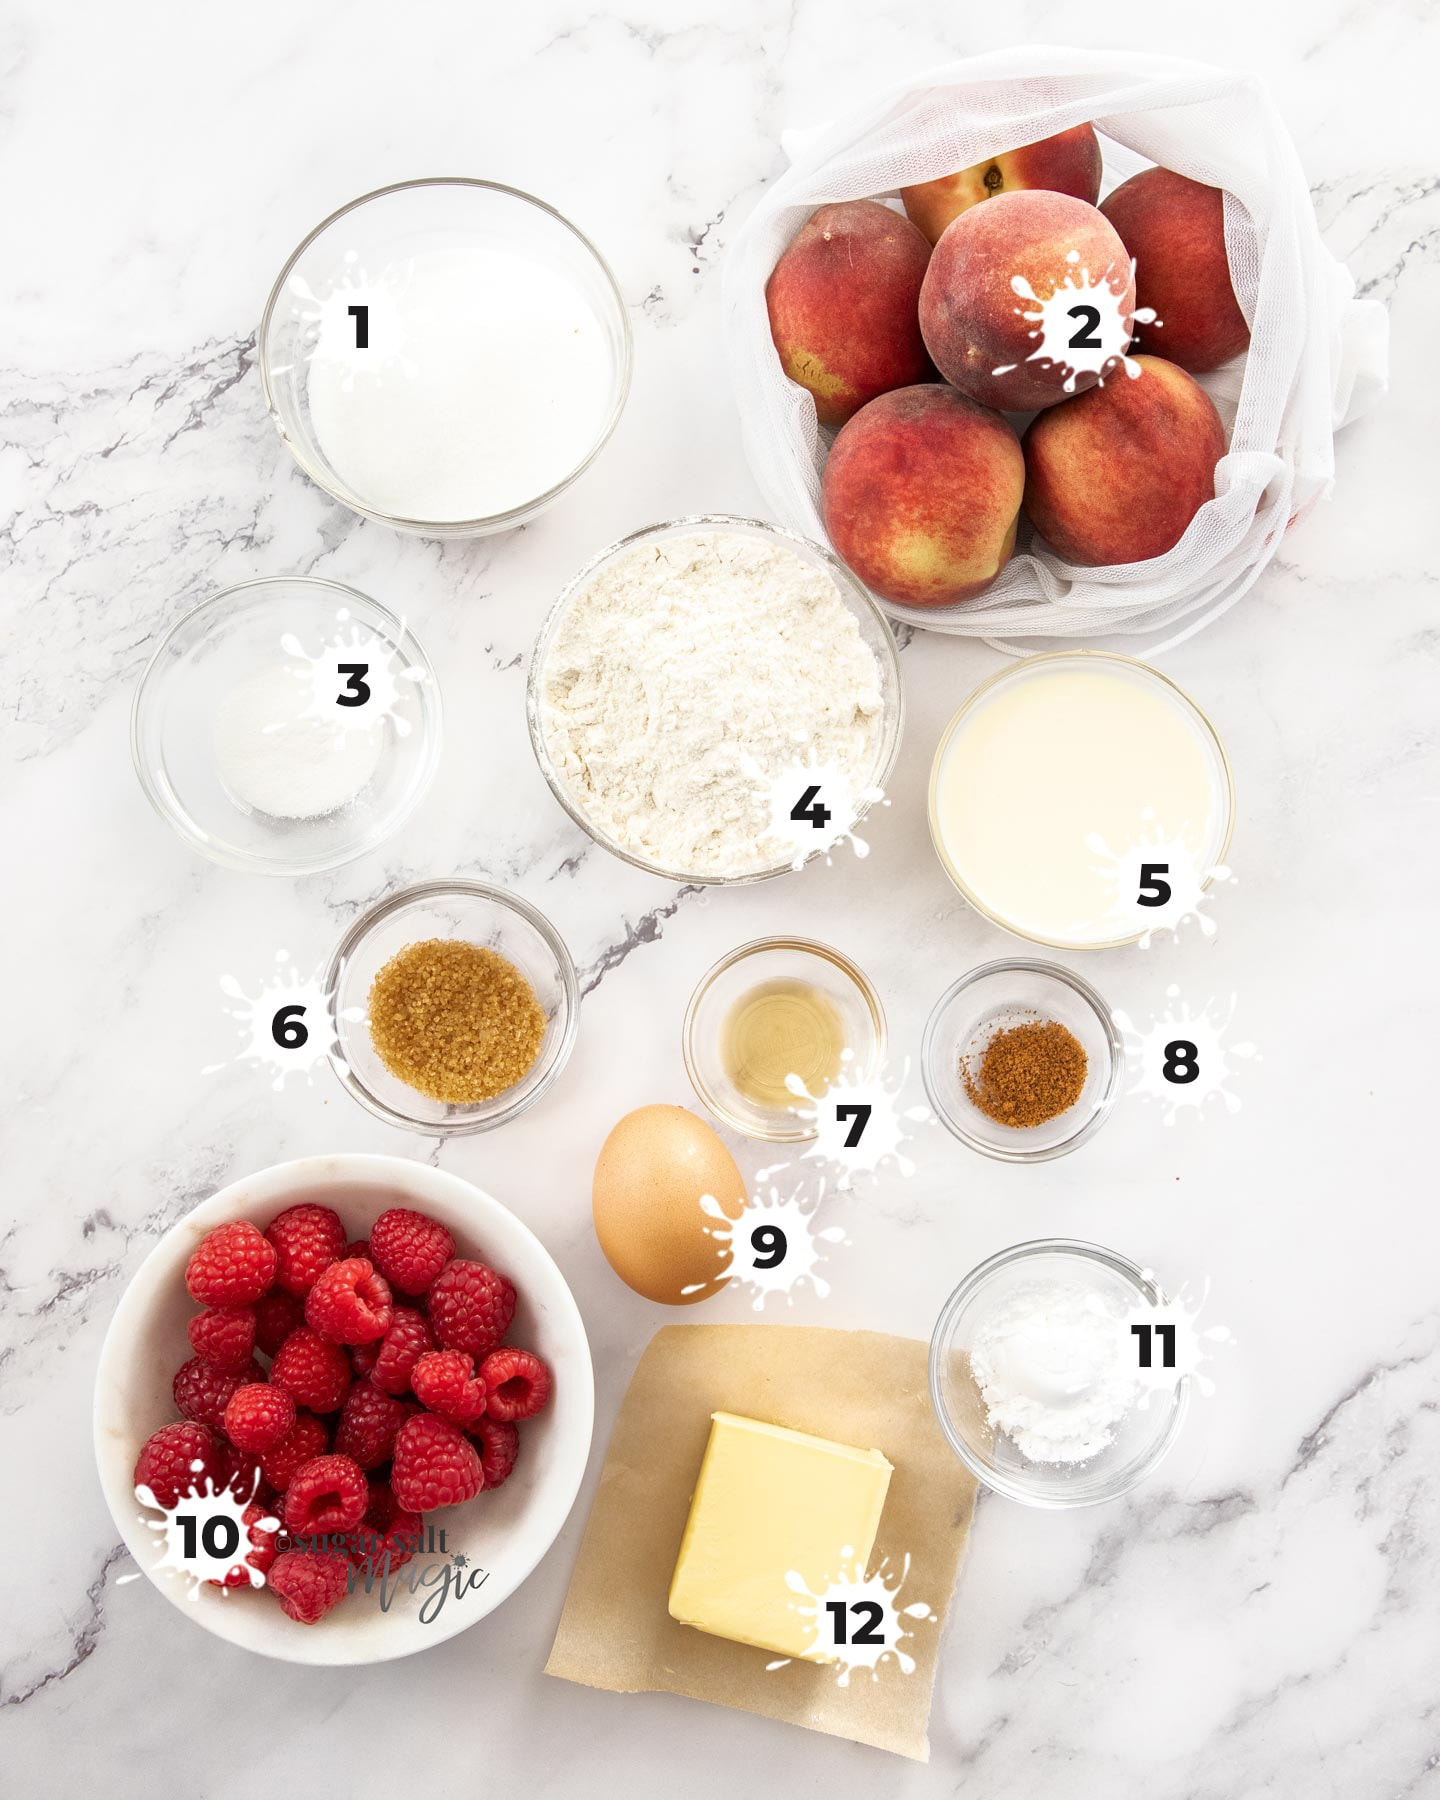 Ingredients for raspberry peach cobbler on a marble surface